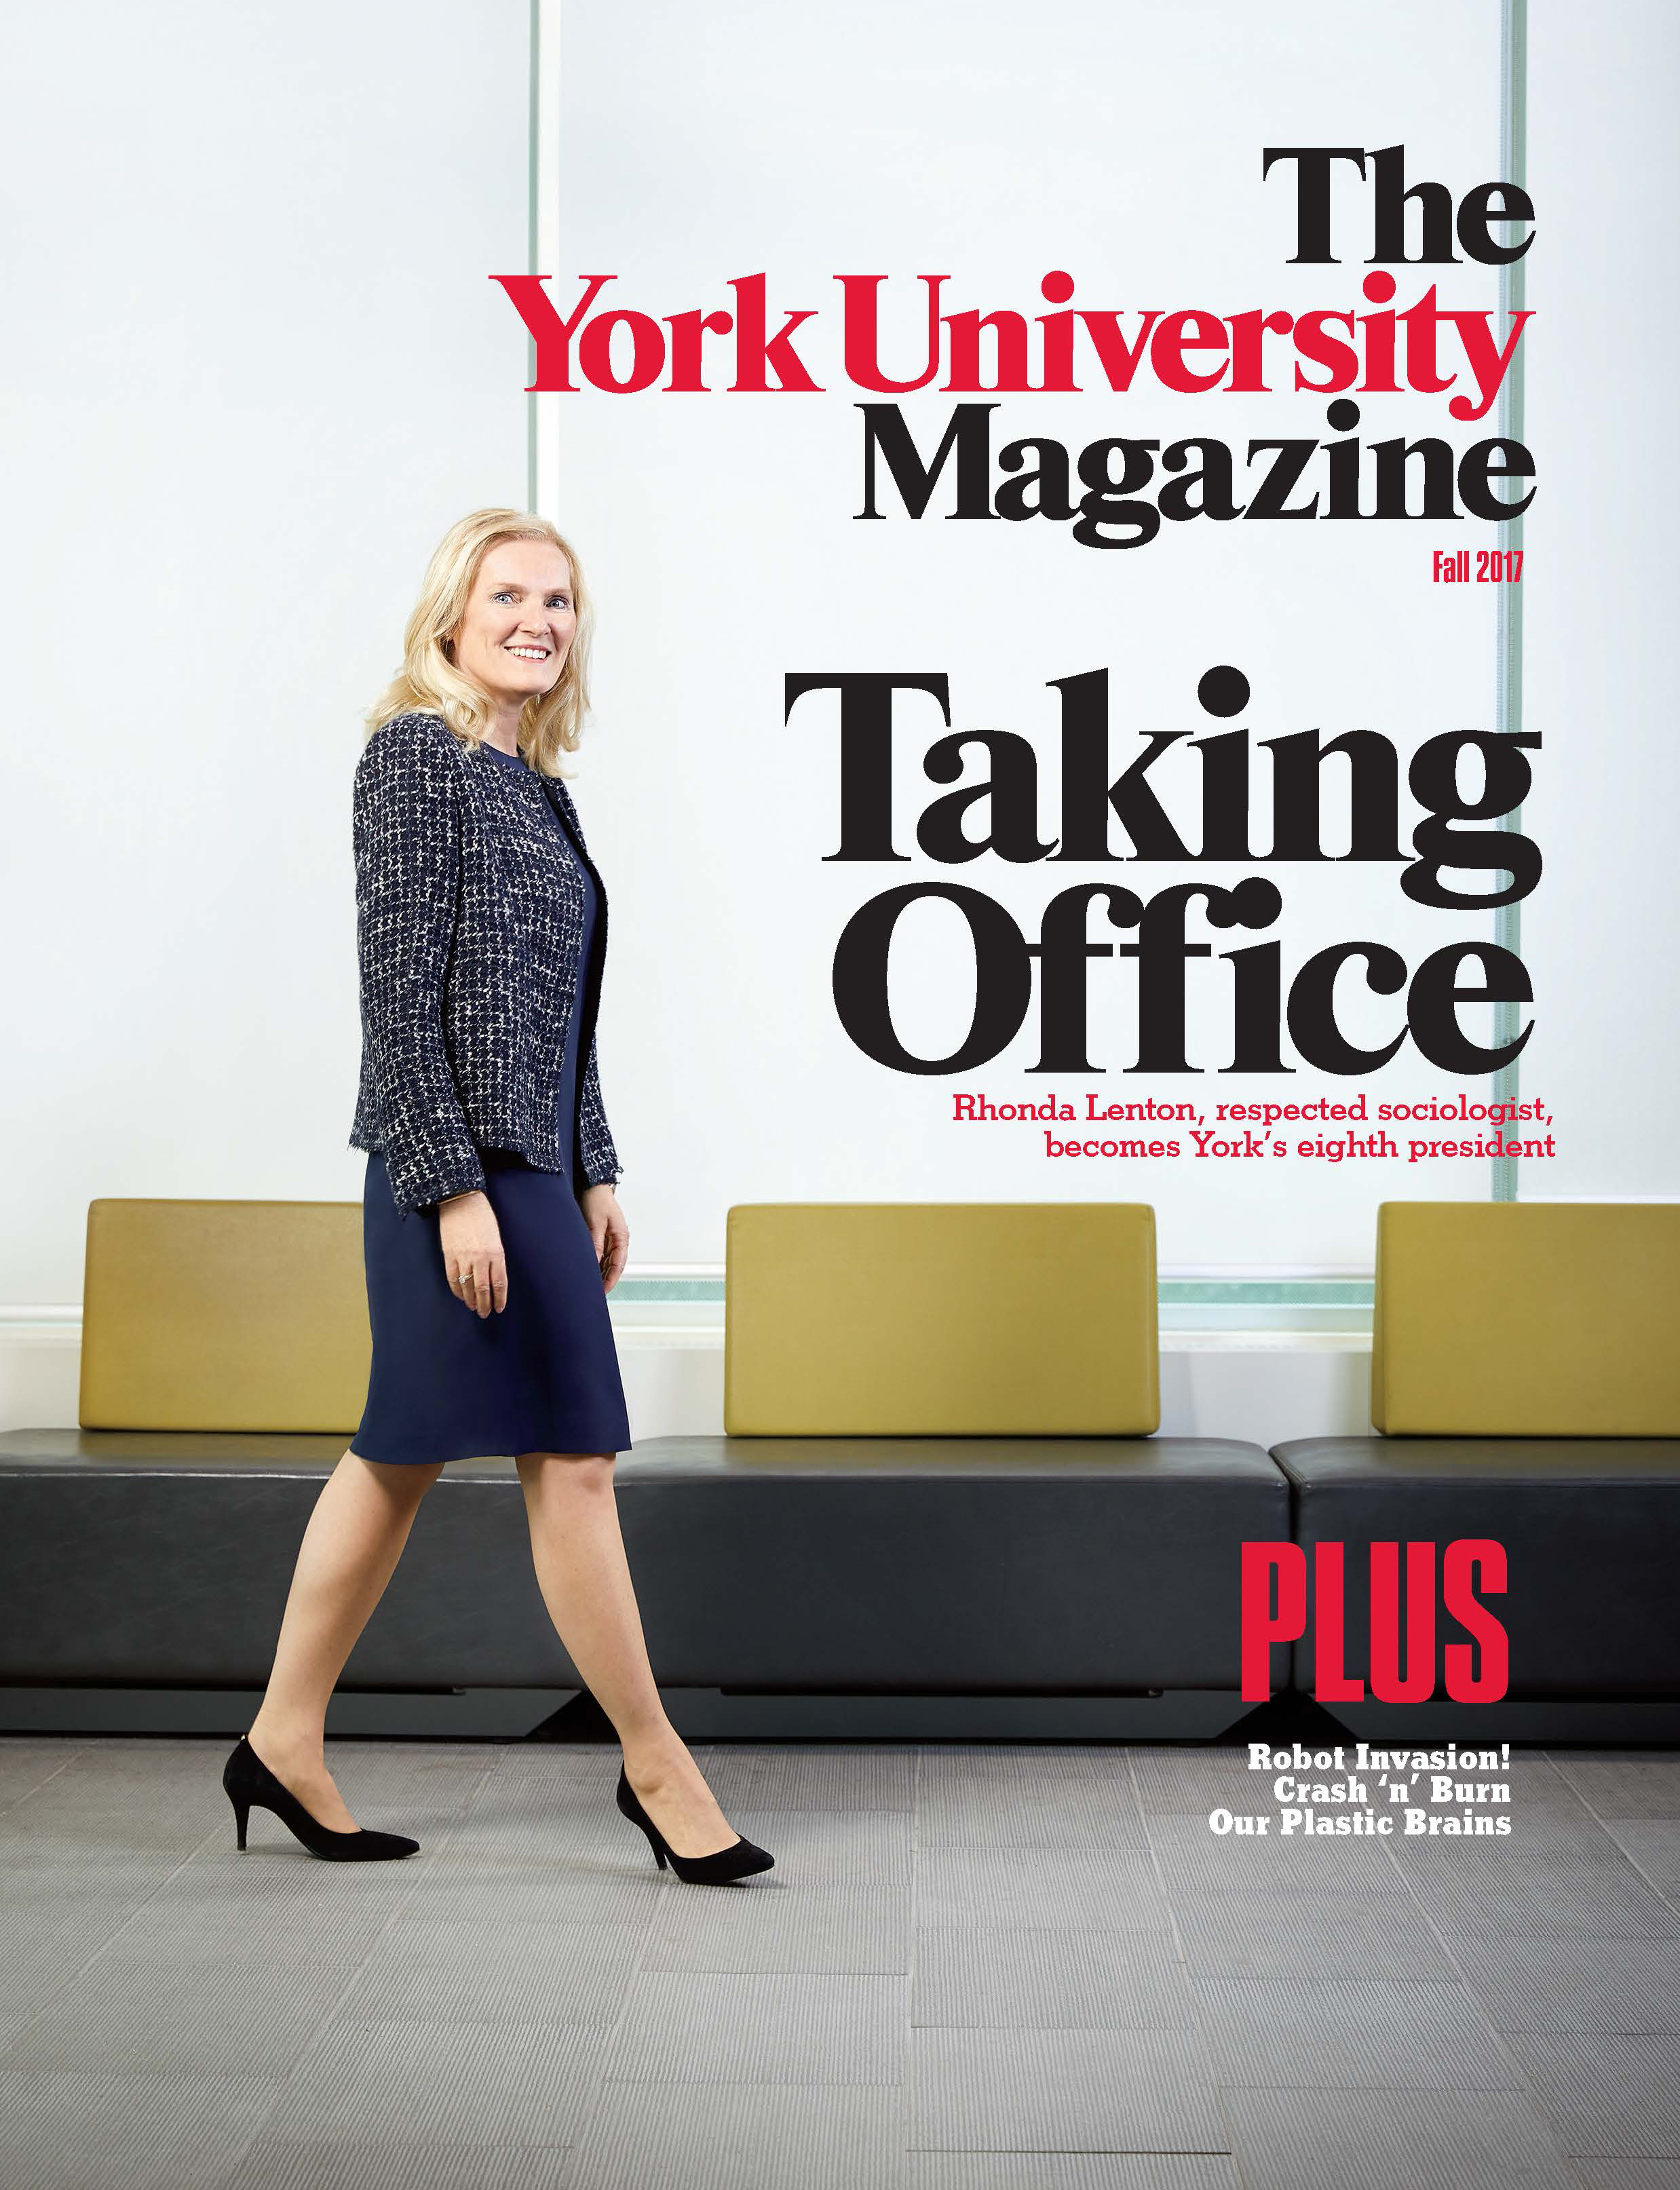 The York University Magazine Fall 2017 cover